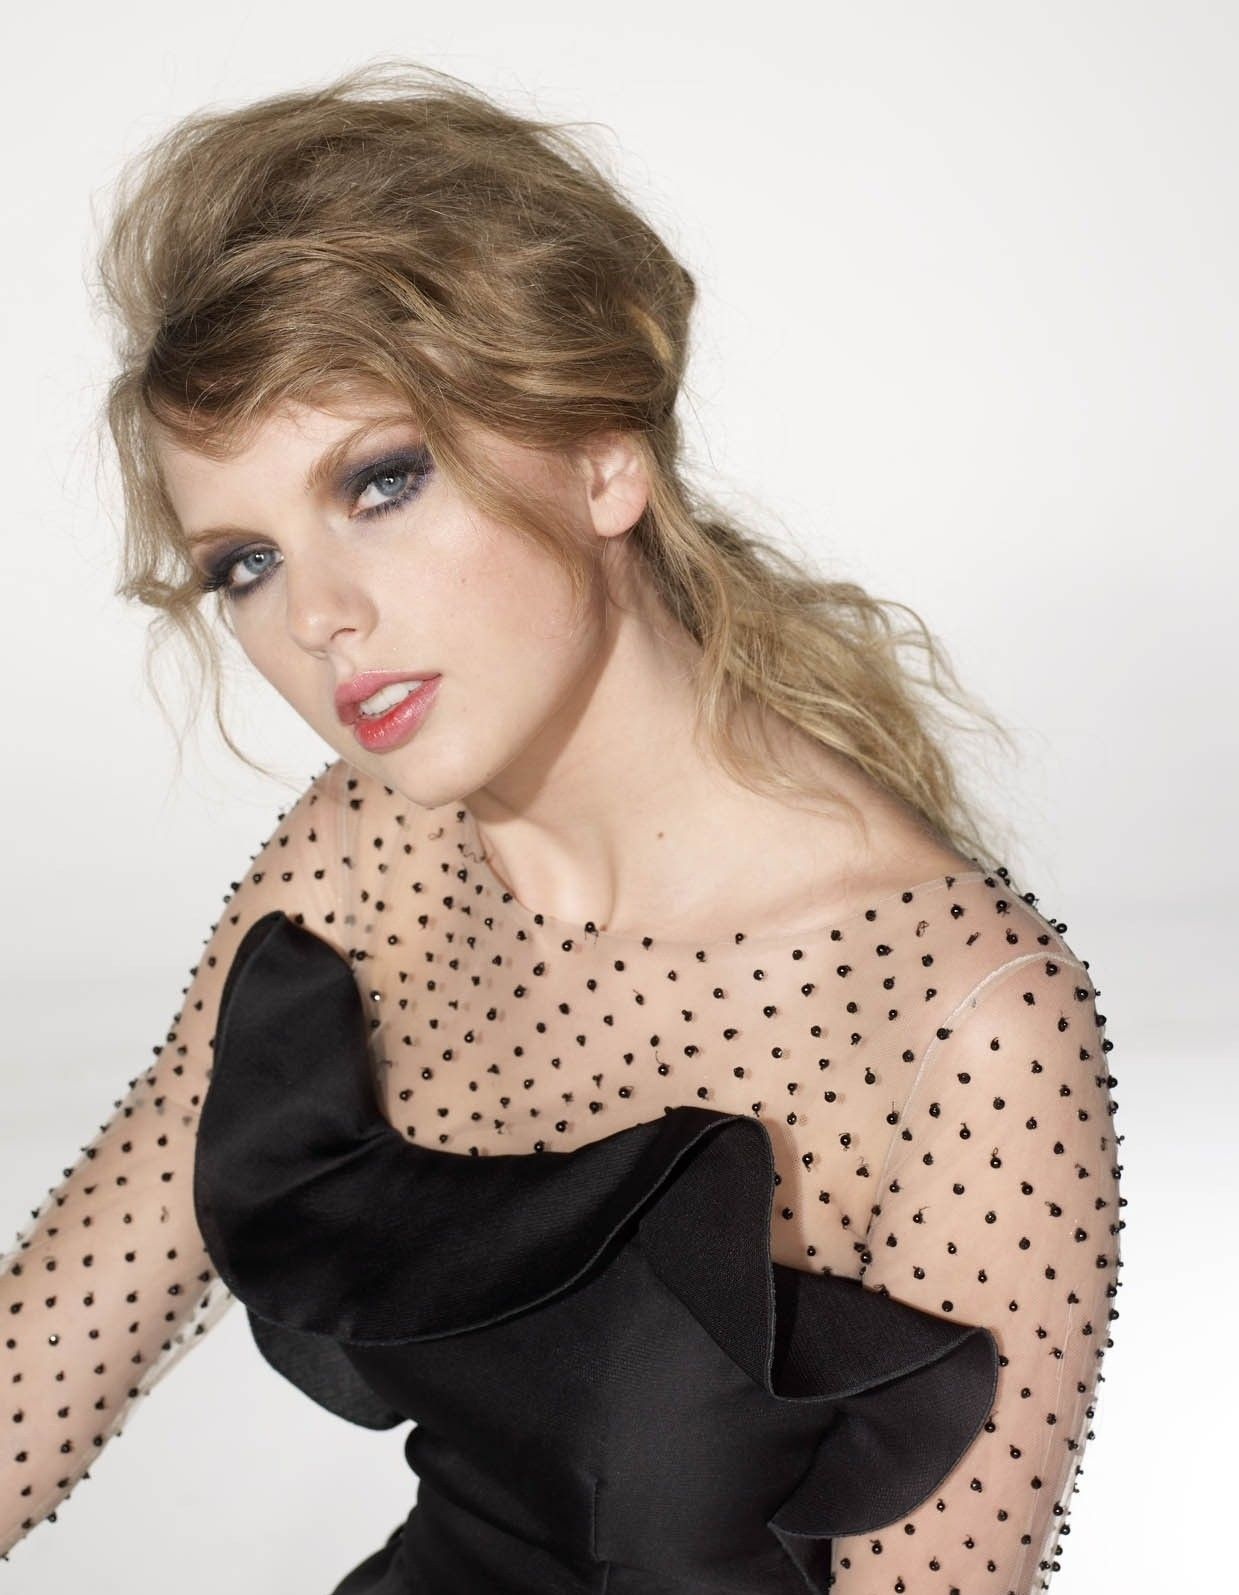 Taylor Swift Maxim Photo Shoot | Fanclub Photos Videos News Quizzes Pages Links